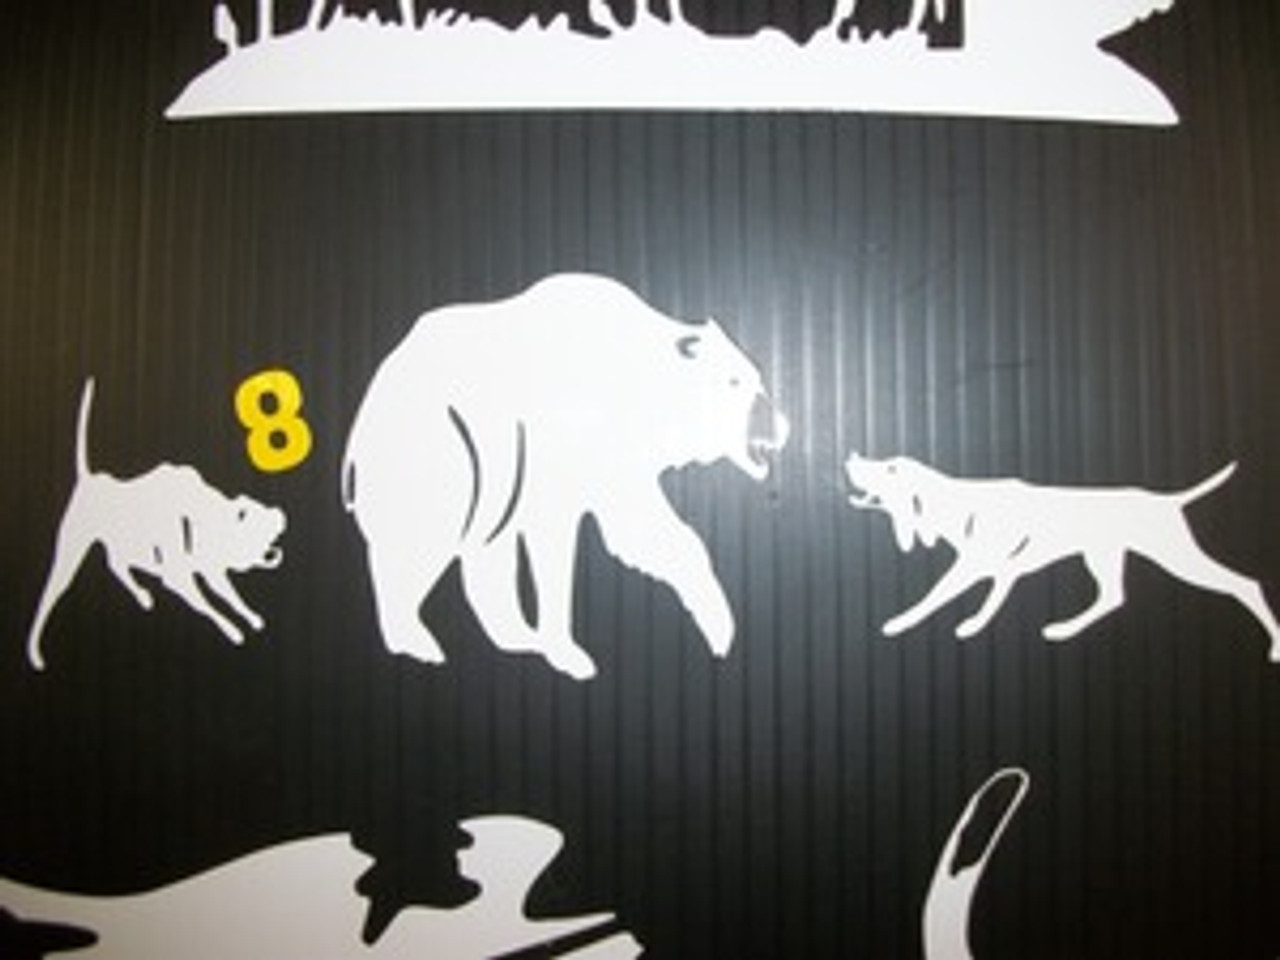 Bayed bear with 2 dogs window decal